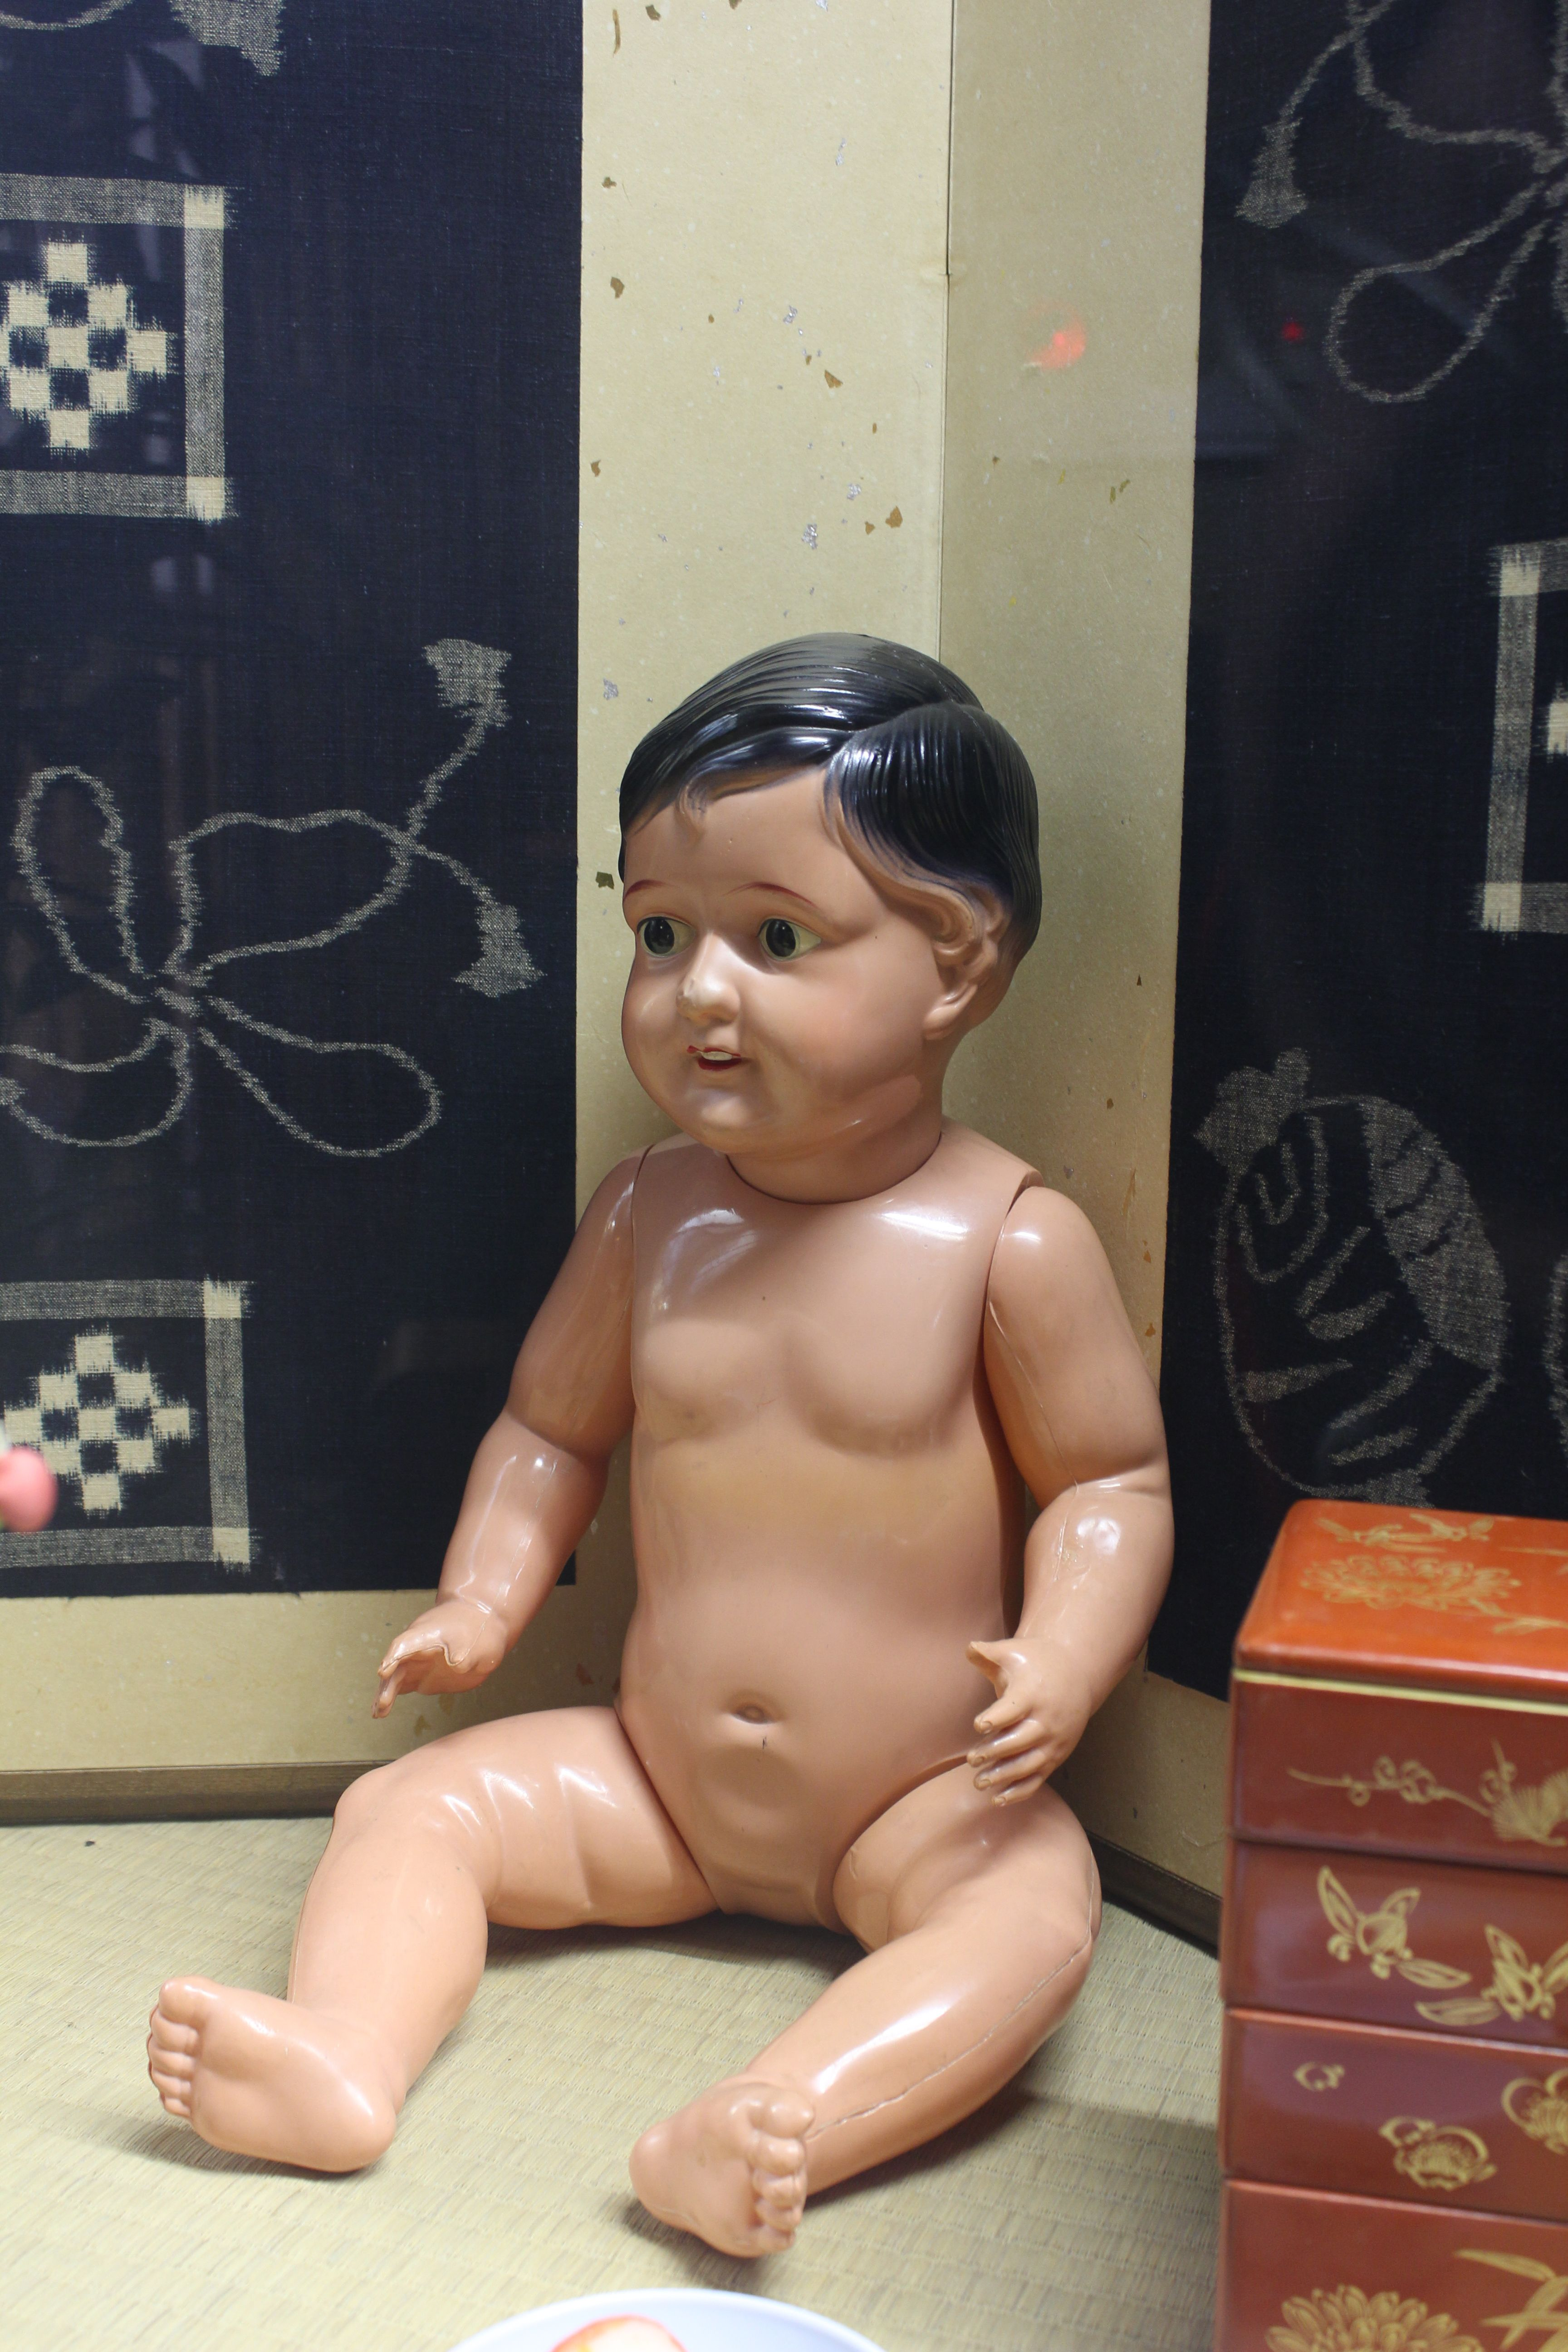 A finely crafted male doll #doll #Matsuyama